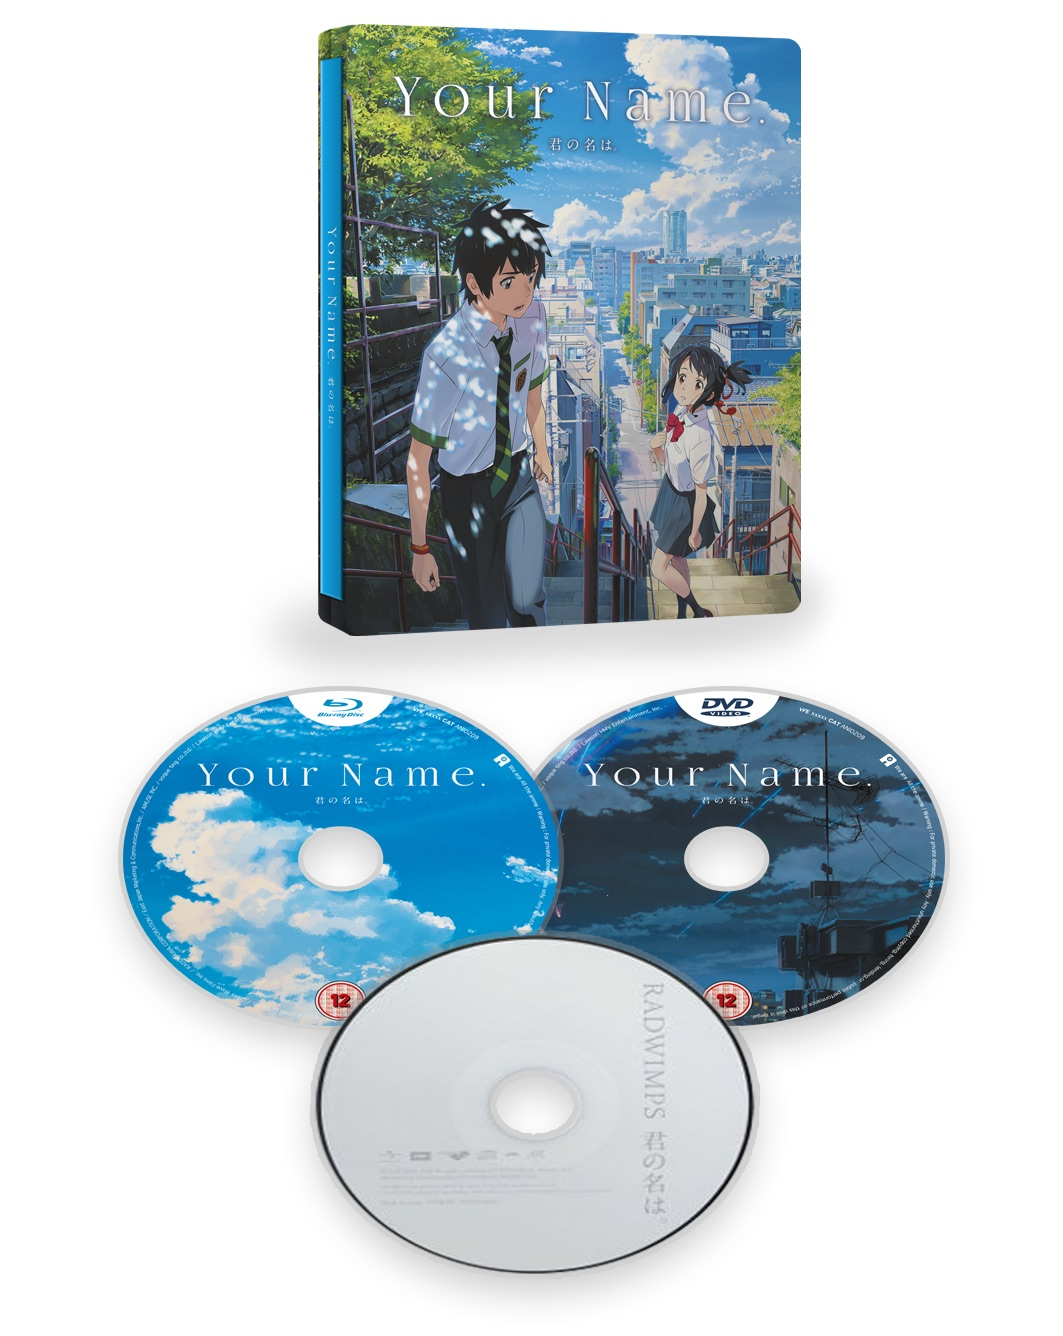 Ltd Collector's Edition Steelbook Version [NOTE: Image updated on 15th Sept. to reflect updated disc art]